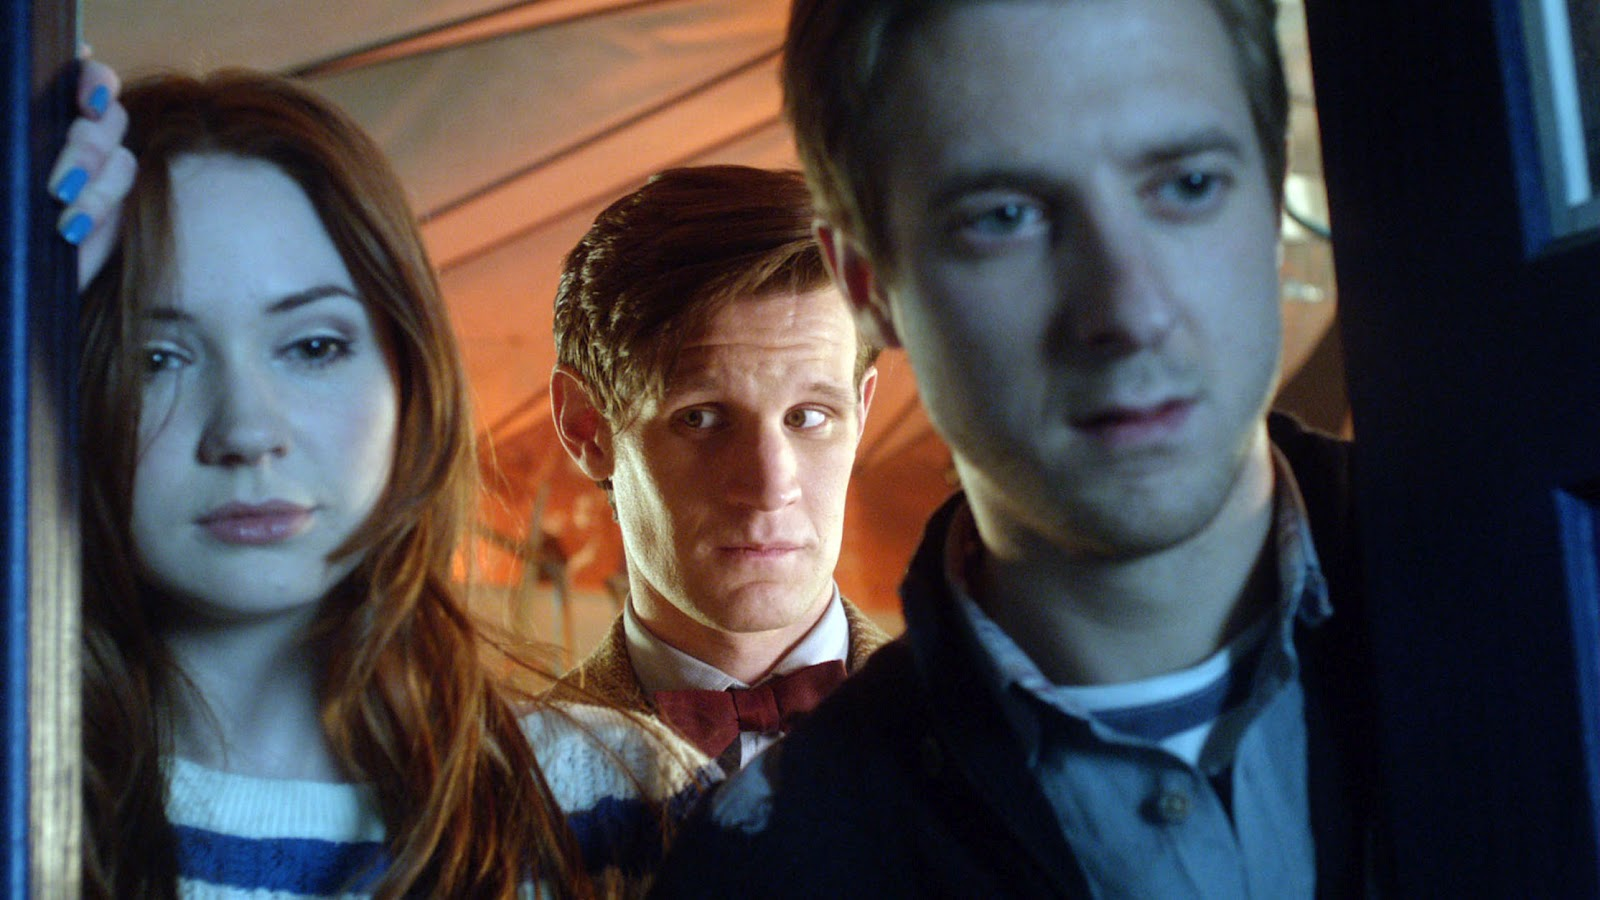 Doctor Who 227 S7e02 Dinosaurs On A Spaceship Dvdbash 24 Dvdbash